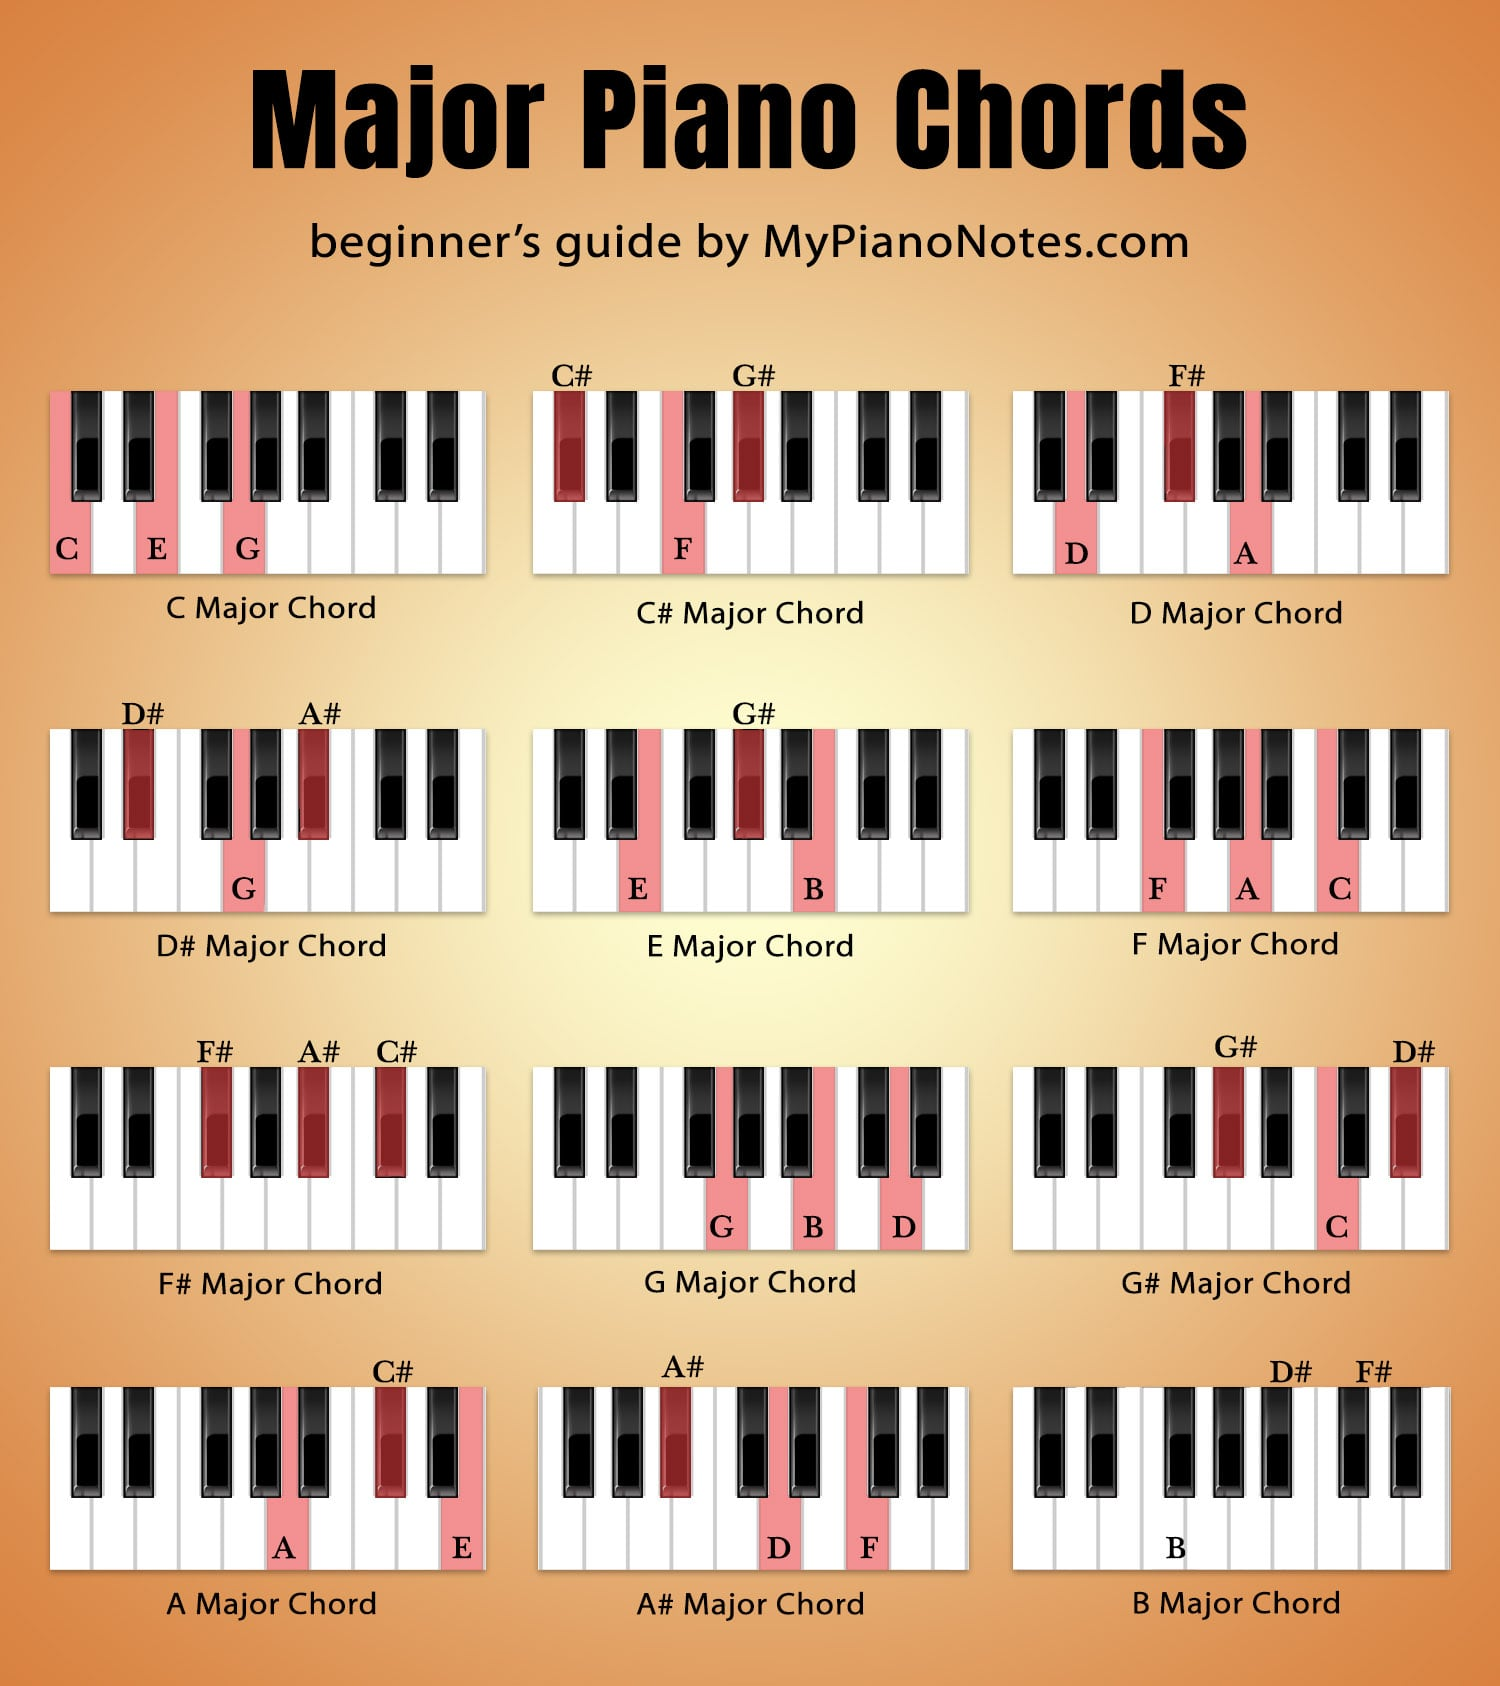 photo about Piano Chord Chart Printable titled Piano Chords - Final Specialist for Inexperienced persons